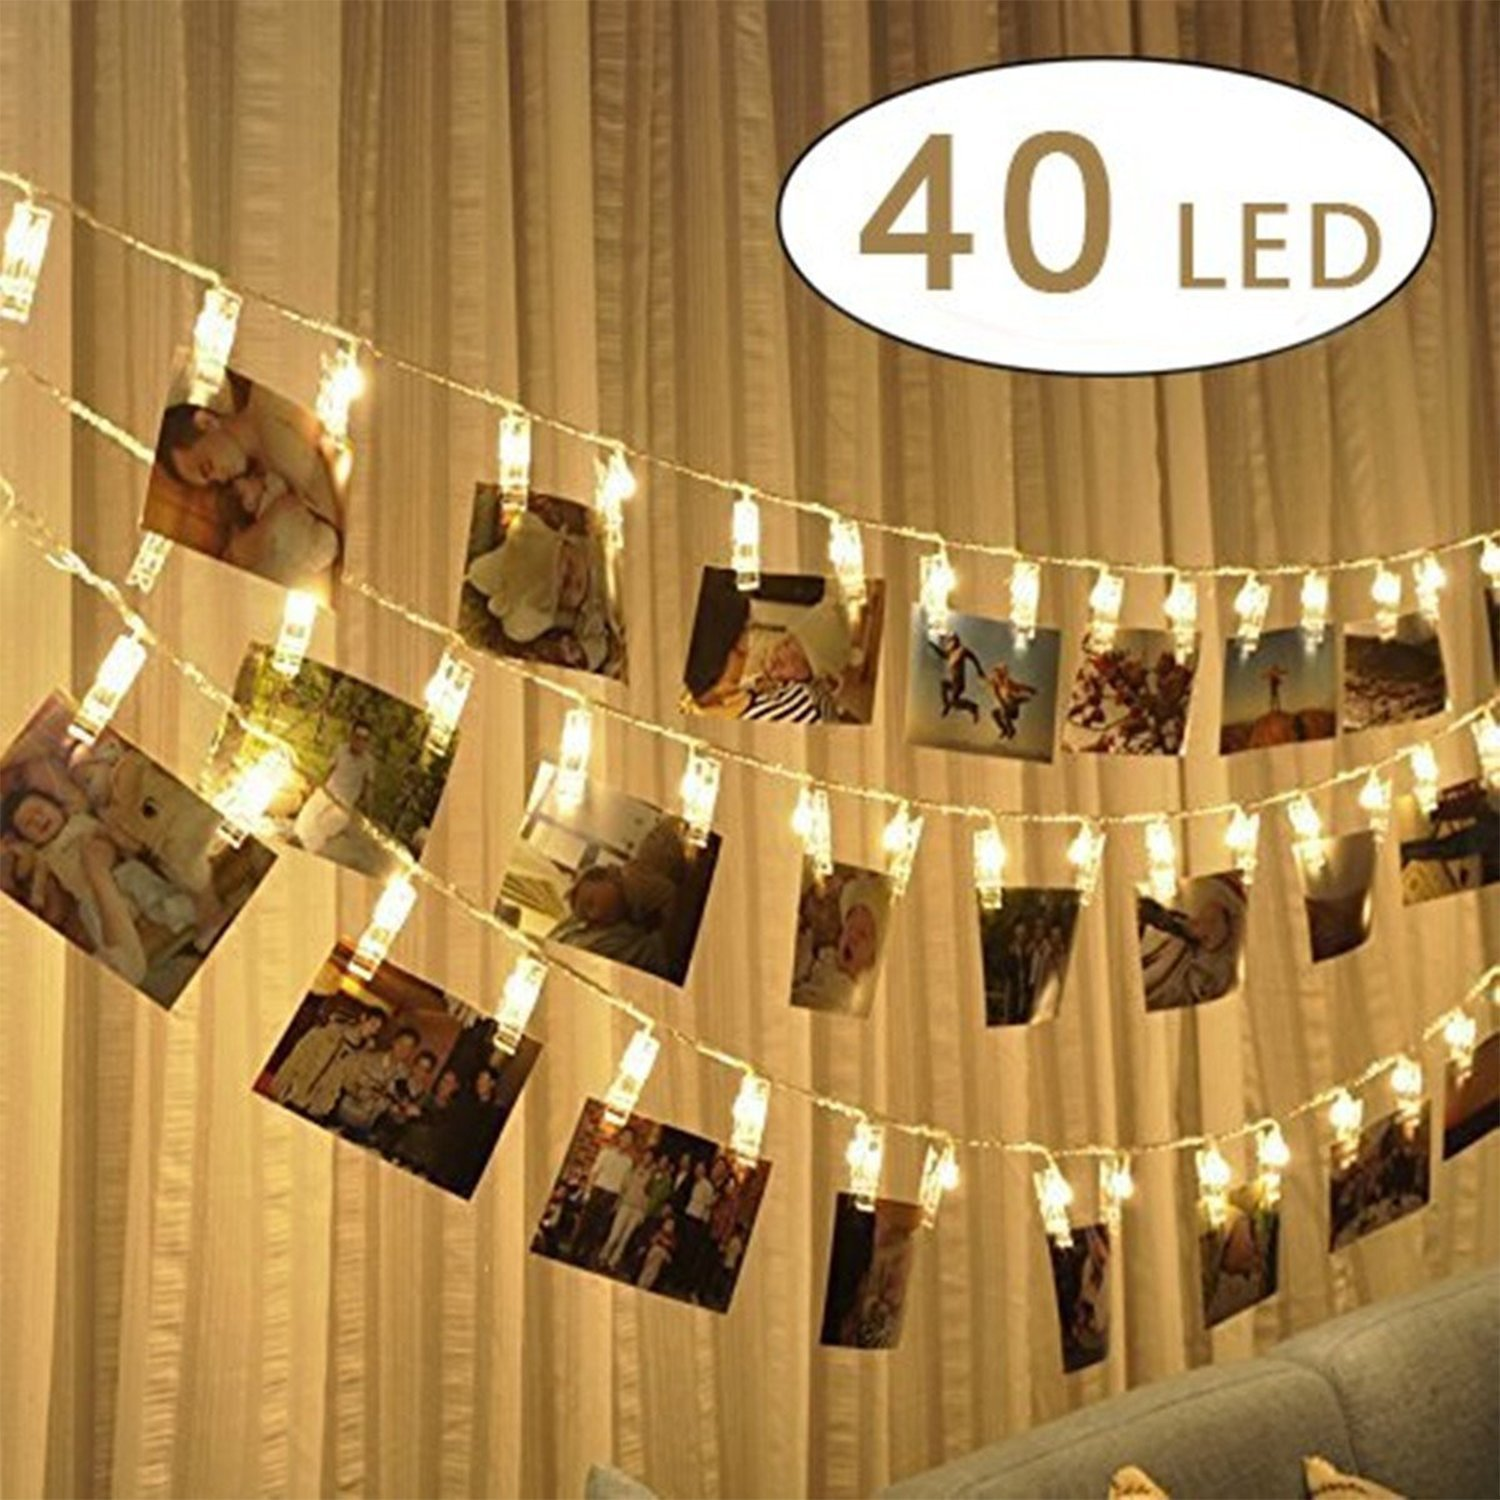 40 LED Photo Clip Lights,13ft Battery Powered fairy String Lights with photo clips, Picture Lights for Hanging Photos Pictures Cards, Memos, Artwork, Ideal Gift for Dorms Bedroom Decoration (Warm White) frdzsw